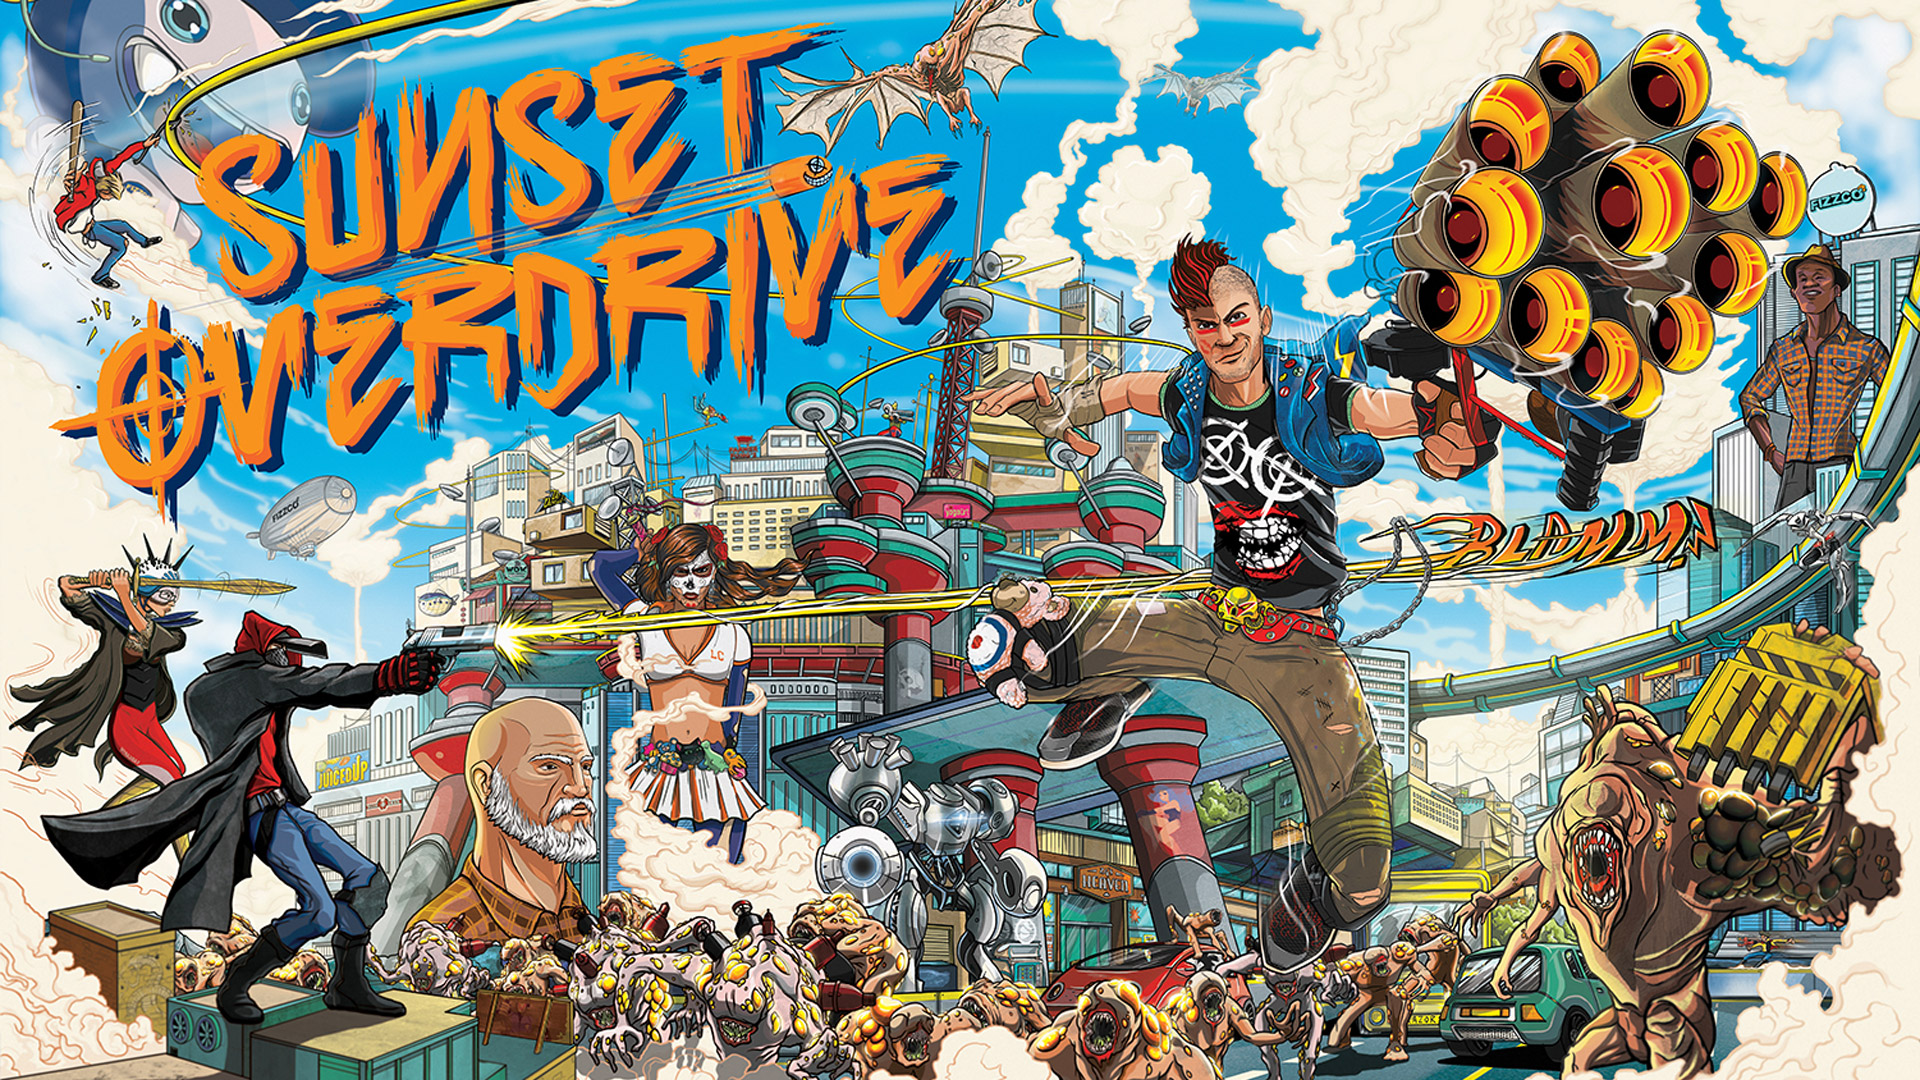 Sunset Overdrive Wallpaper in 1920x1080